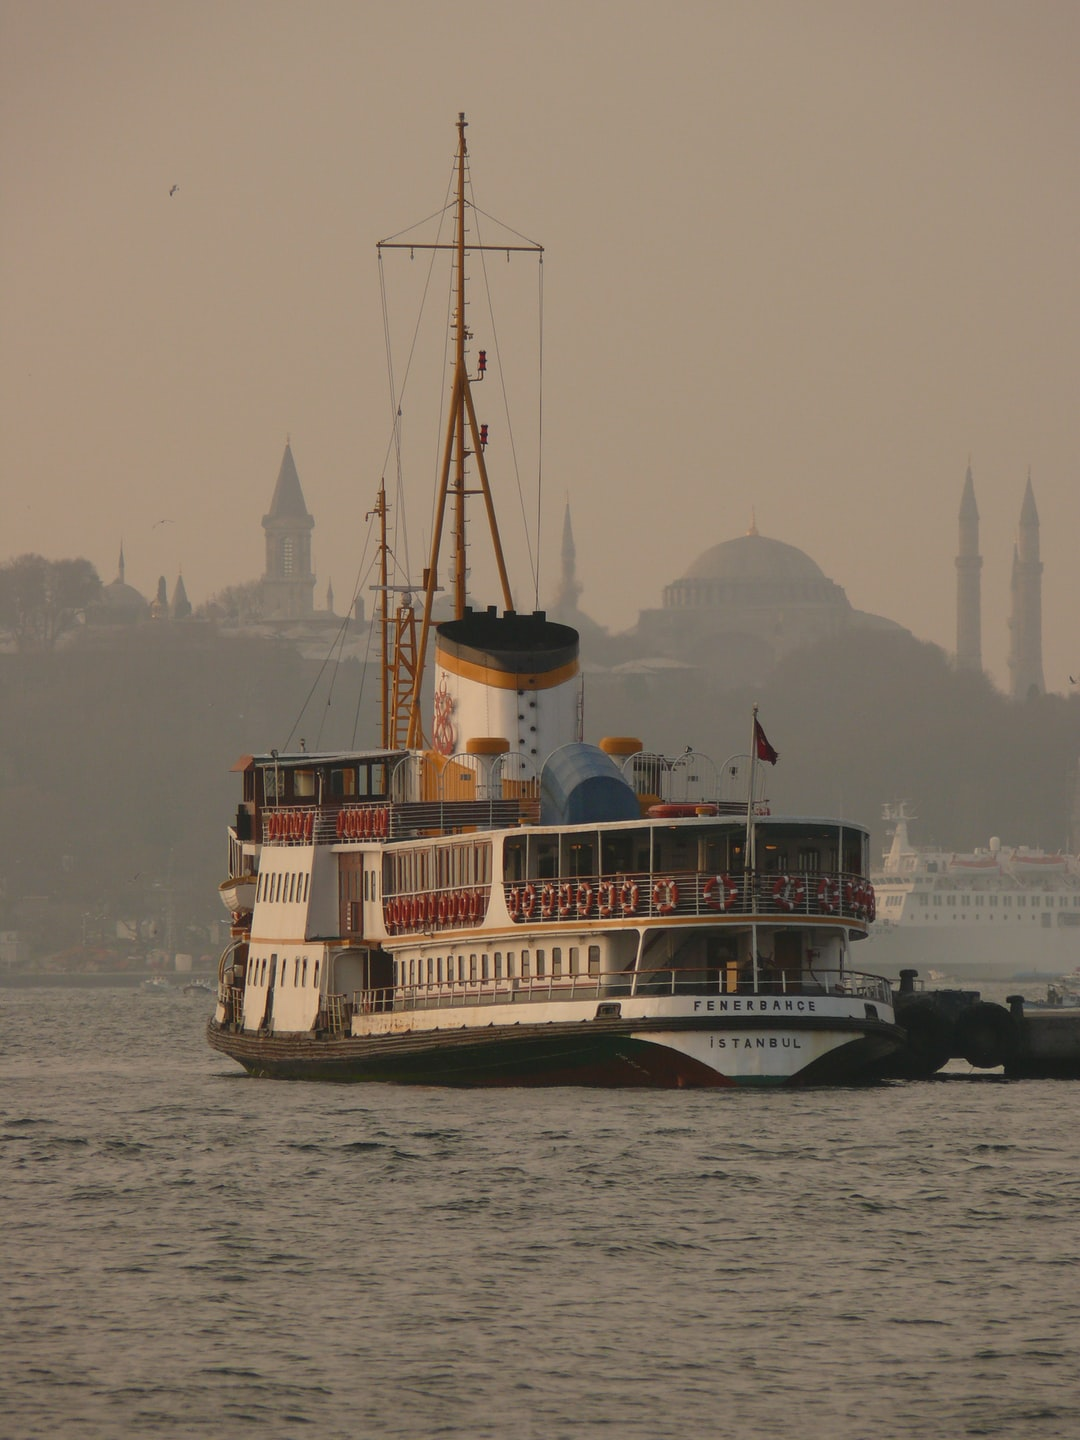 Fenerbahçe steamboat has run on the Bosphorus for decades but that she had to retire. This was one of her last looks at the historical peninsula